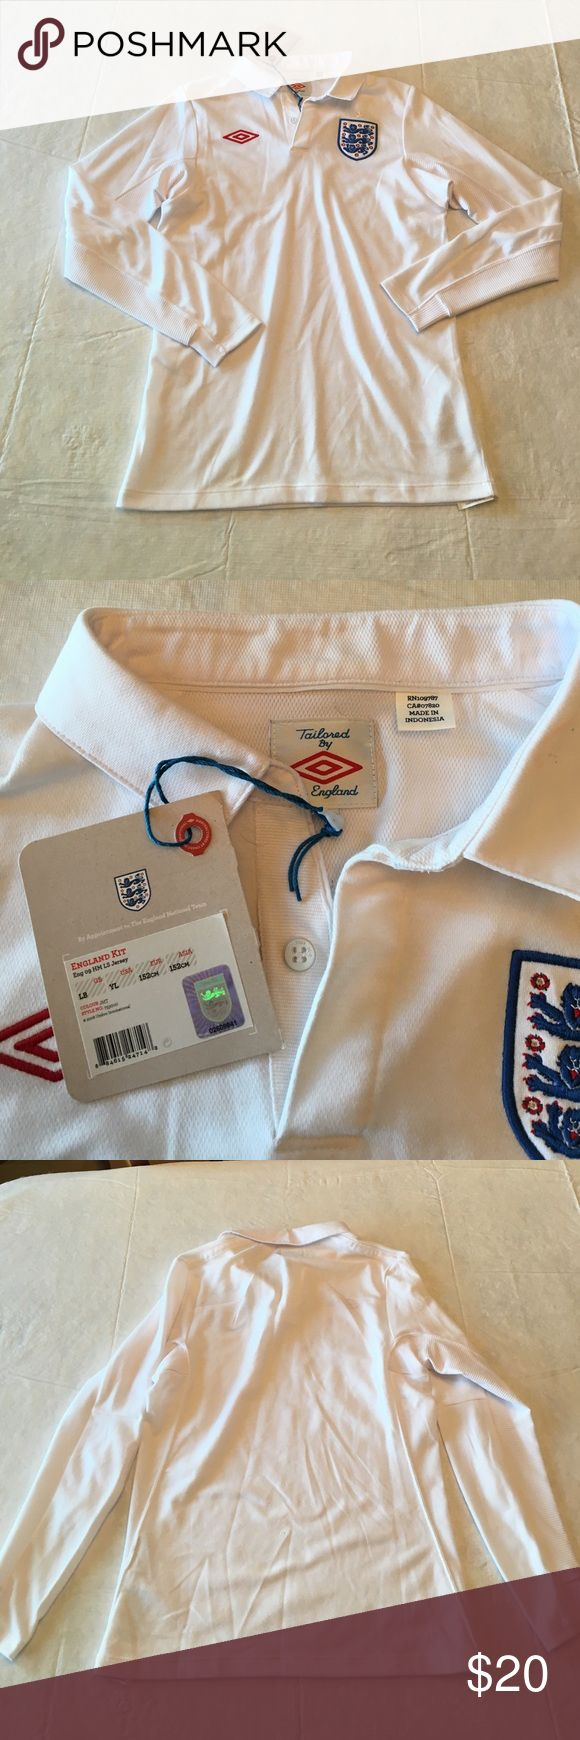 England jersey youth large white nwt NWT England jersey with collar no name on the back.    Box 7 Umbro Shirts & Tops Polos